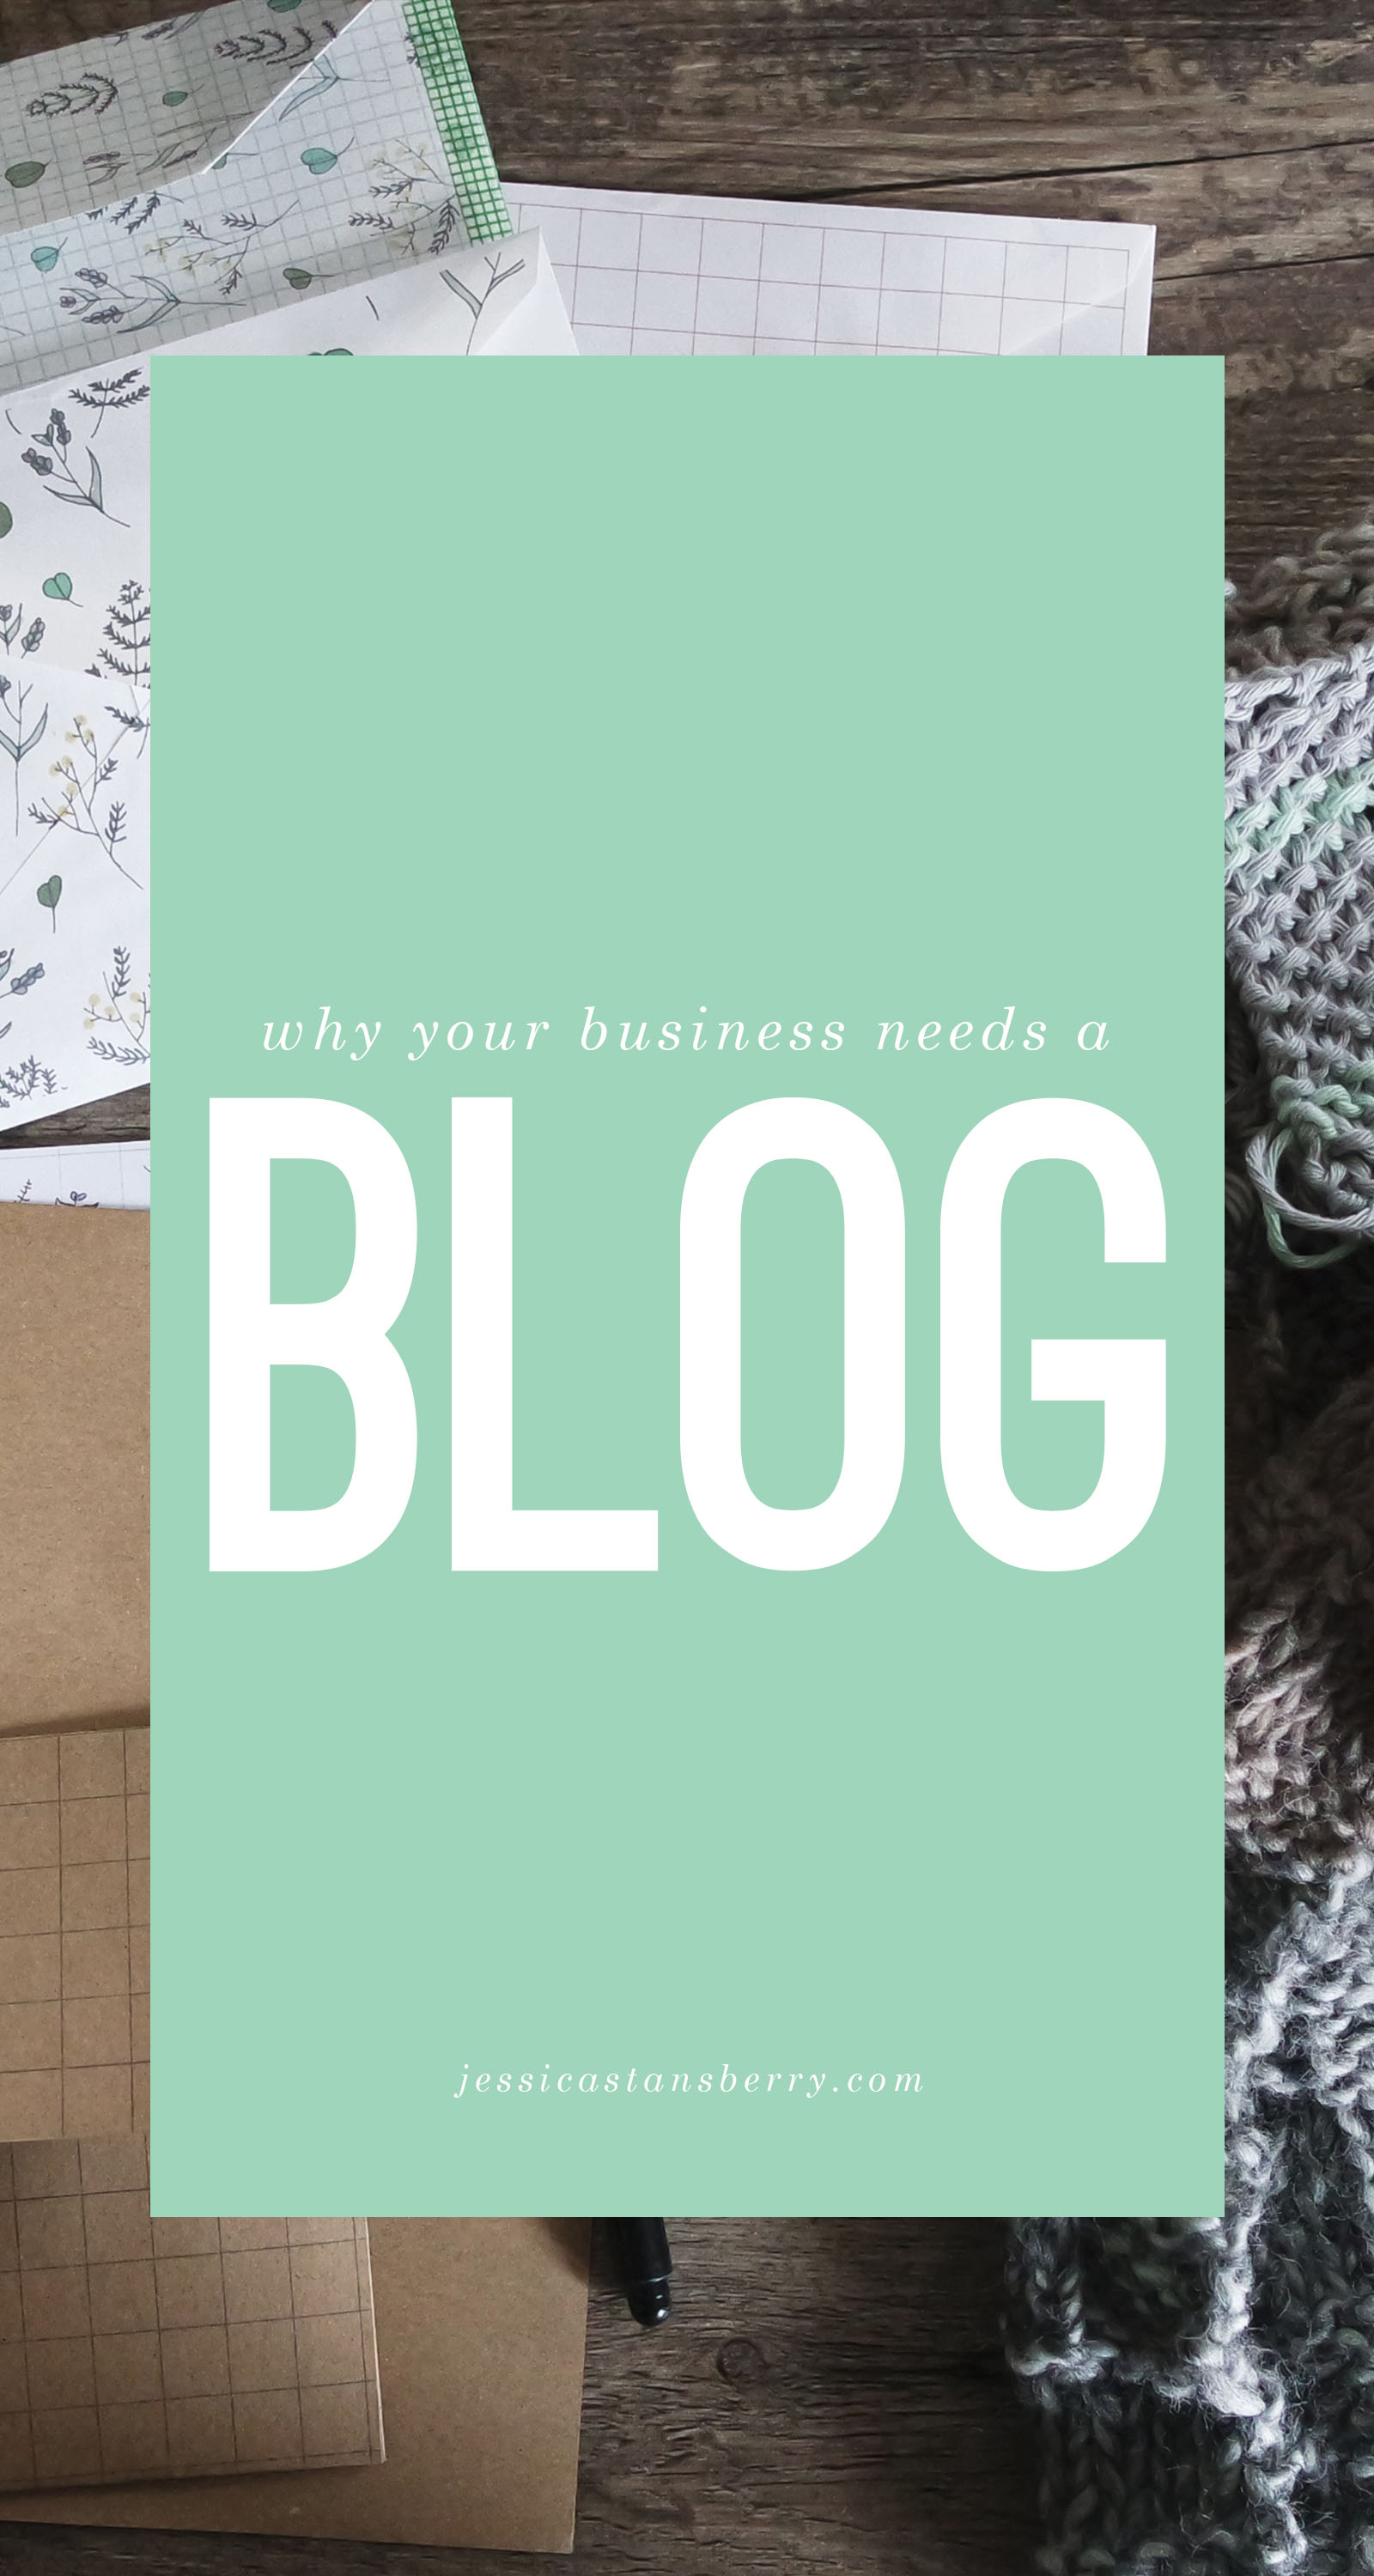 why your business needs a blog | Jessica Stansberry